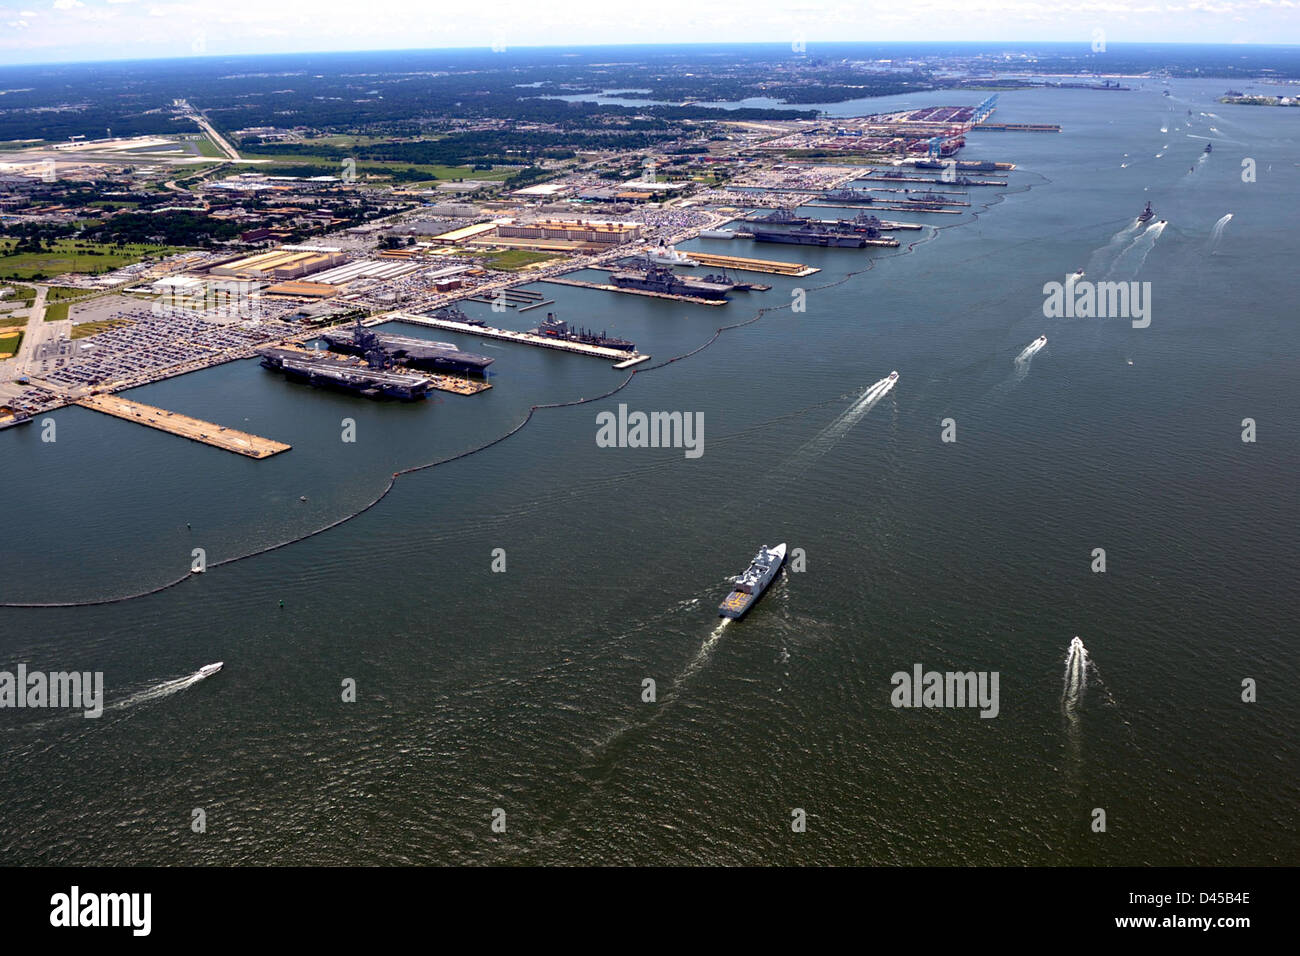 The Naval Station Norfolk waterfront. - Stock Image